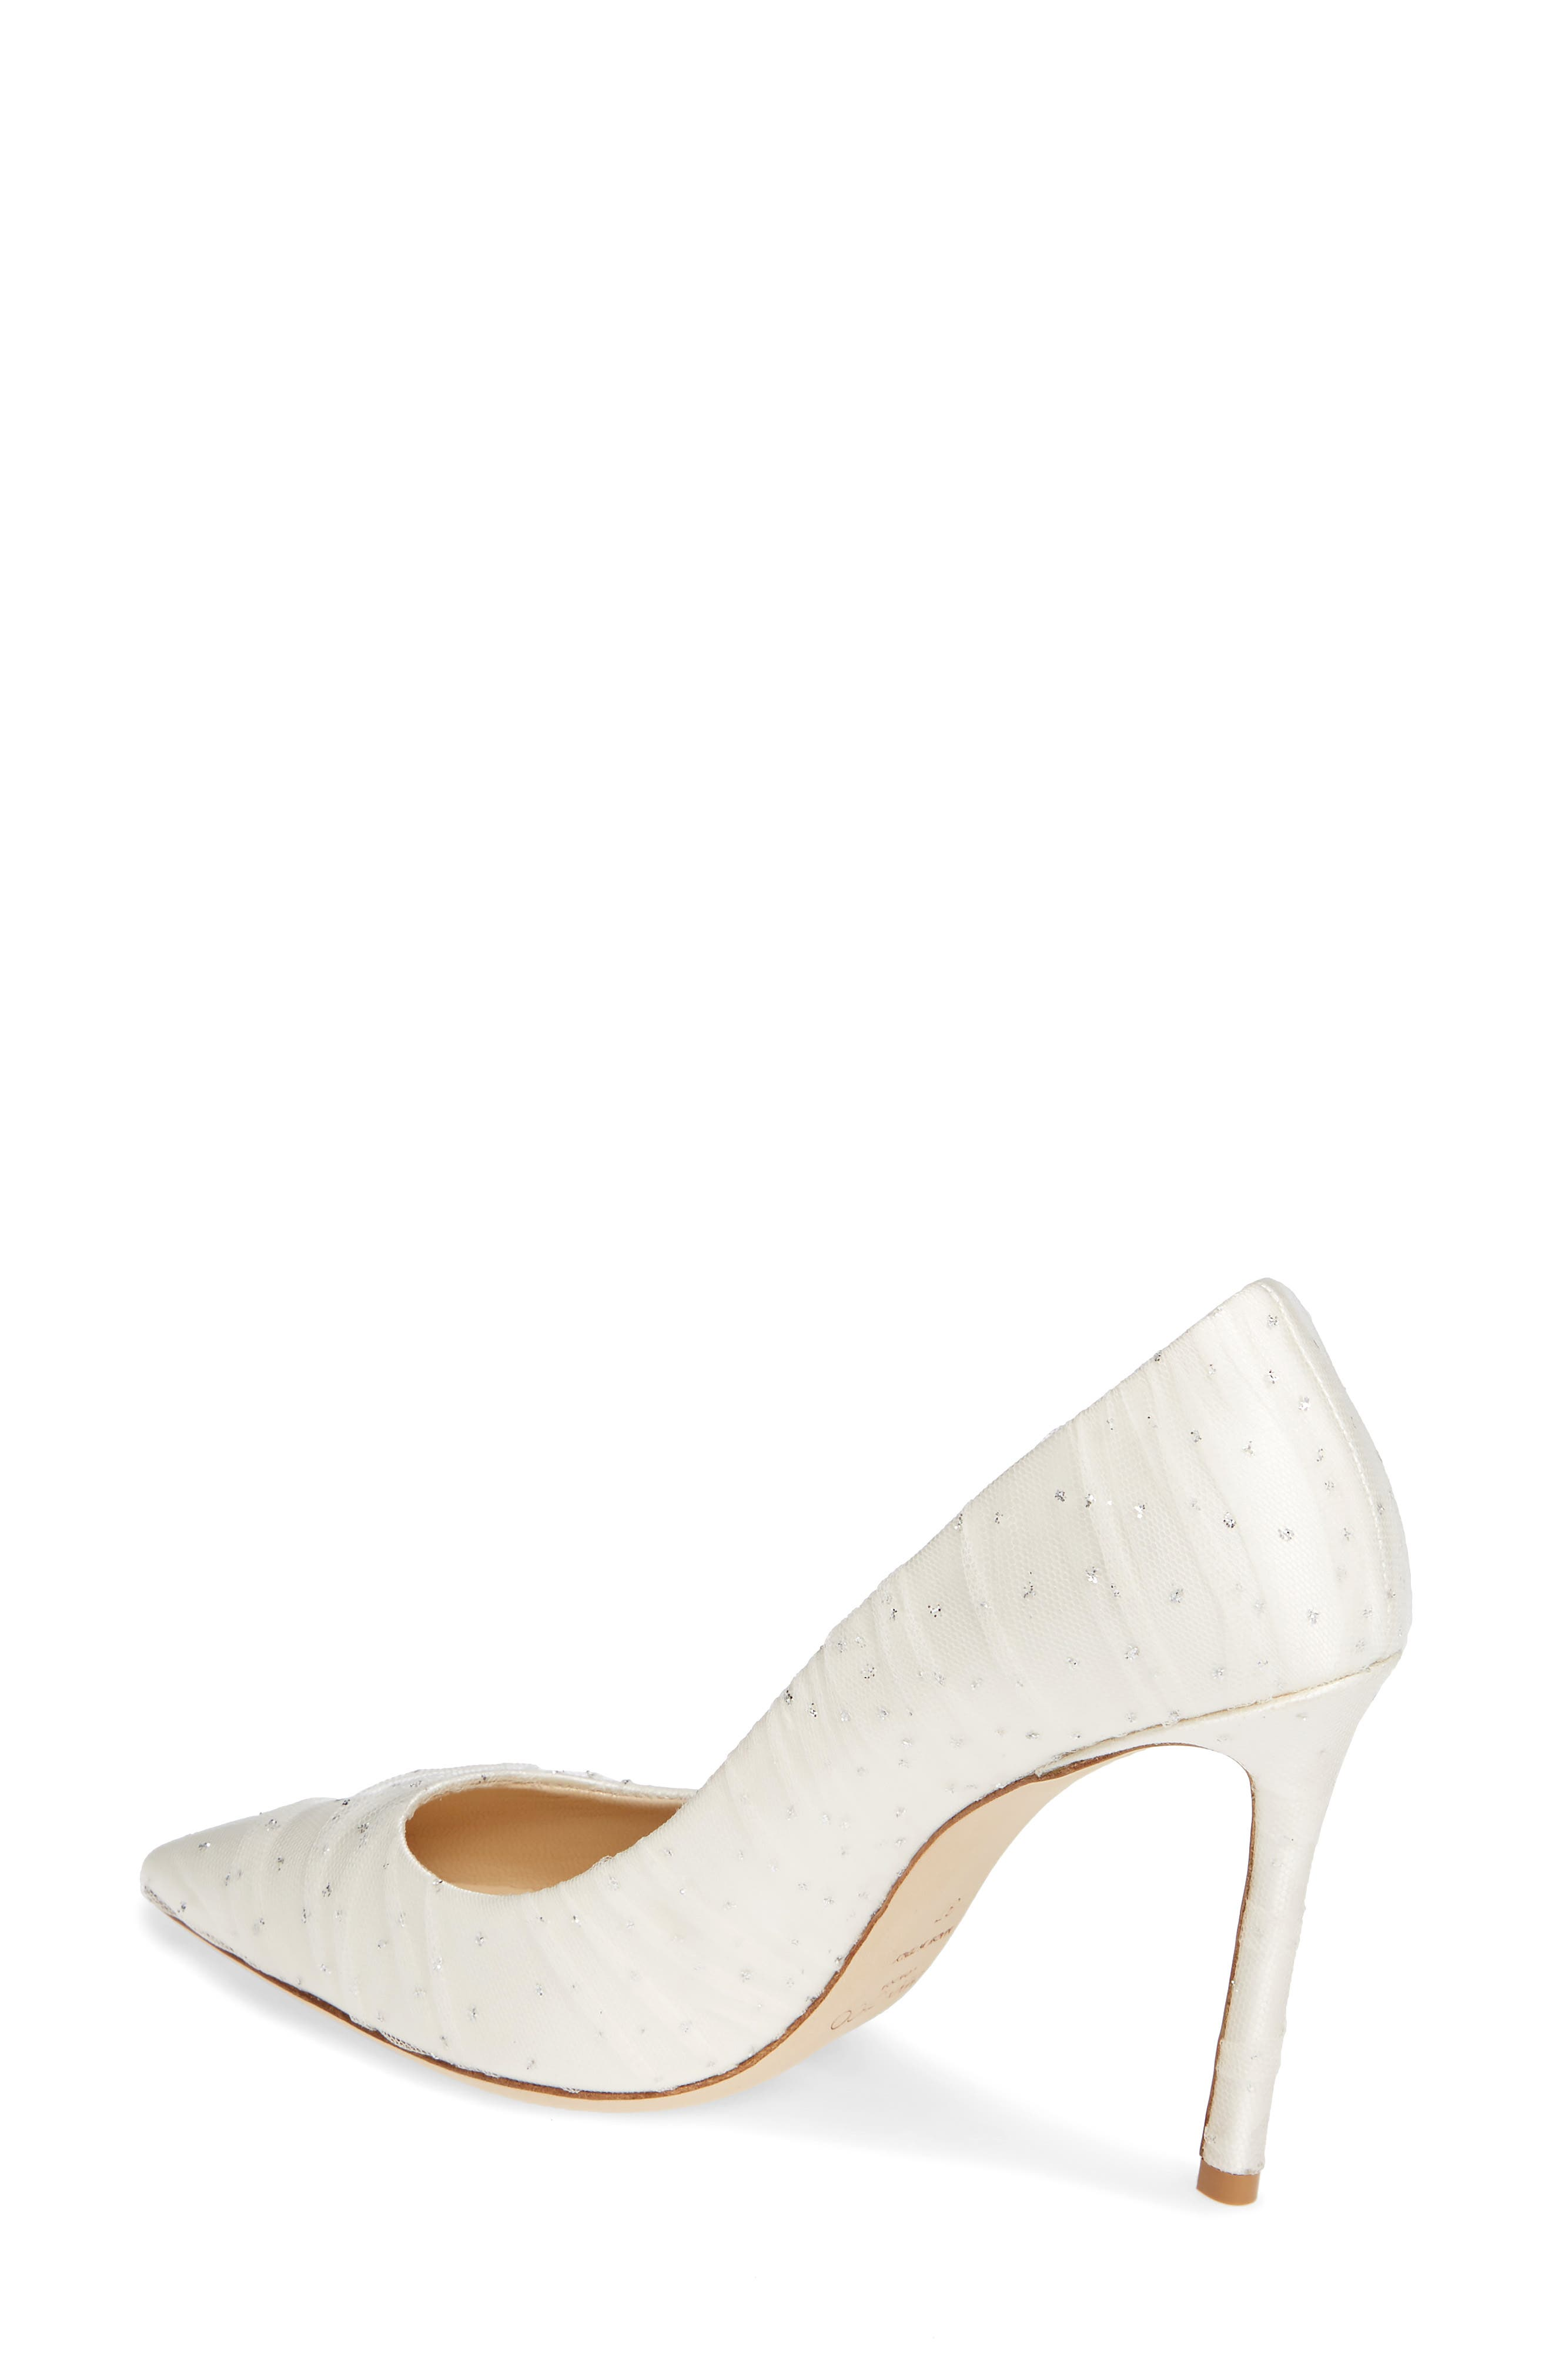 Romy Pointy Toe Pump,                             Alternate thumbnail 2, color,                             WHITE/ SILVER